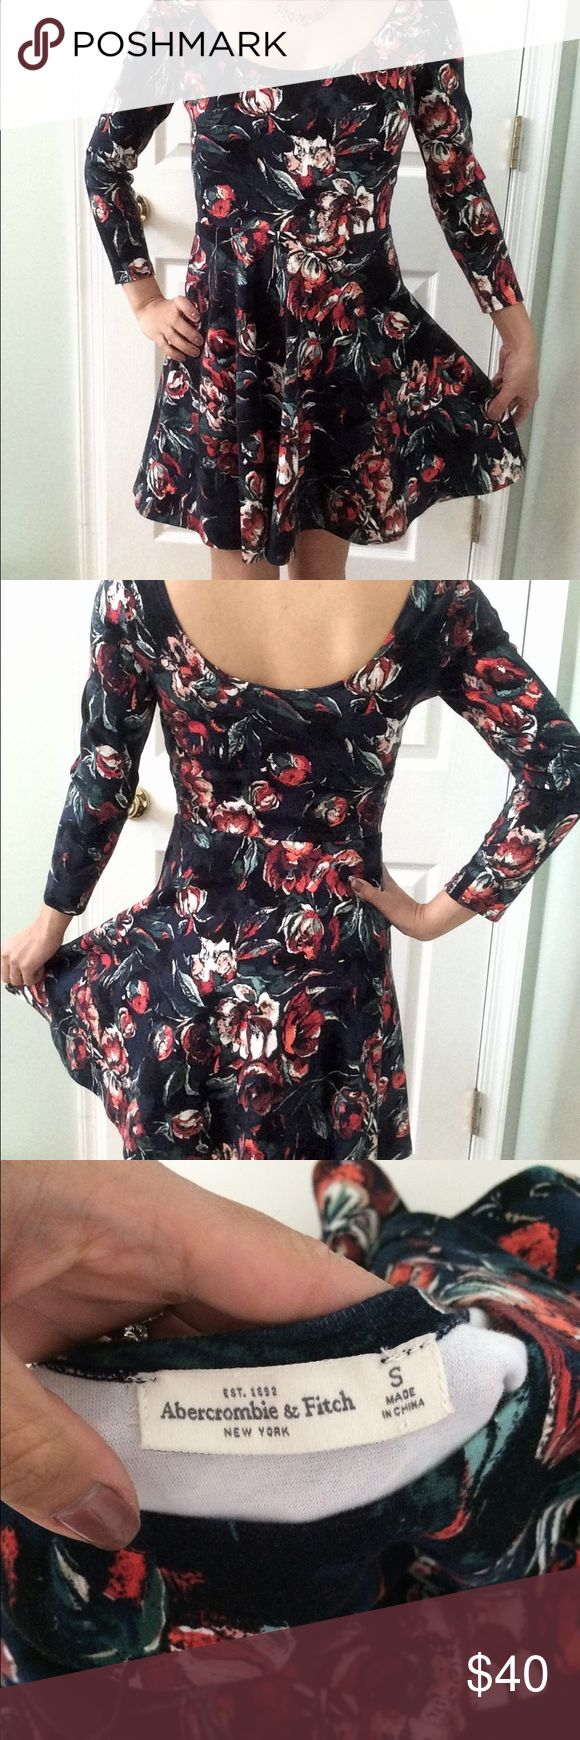 Abercrombie black and floral dress size small Adorable Abercrombie dress, new without tags, tried on but never worn. Size small, fitted at natural waist and flares out beautifully Abercrombie & Fitch Dresses Long Sleeve